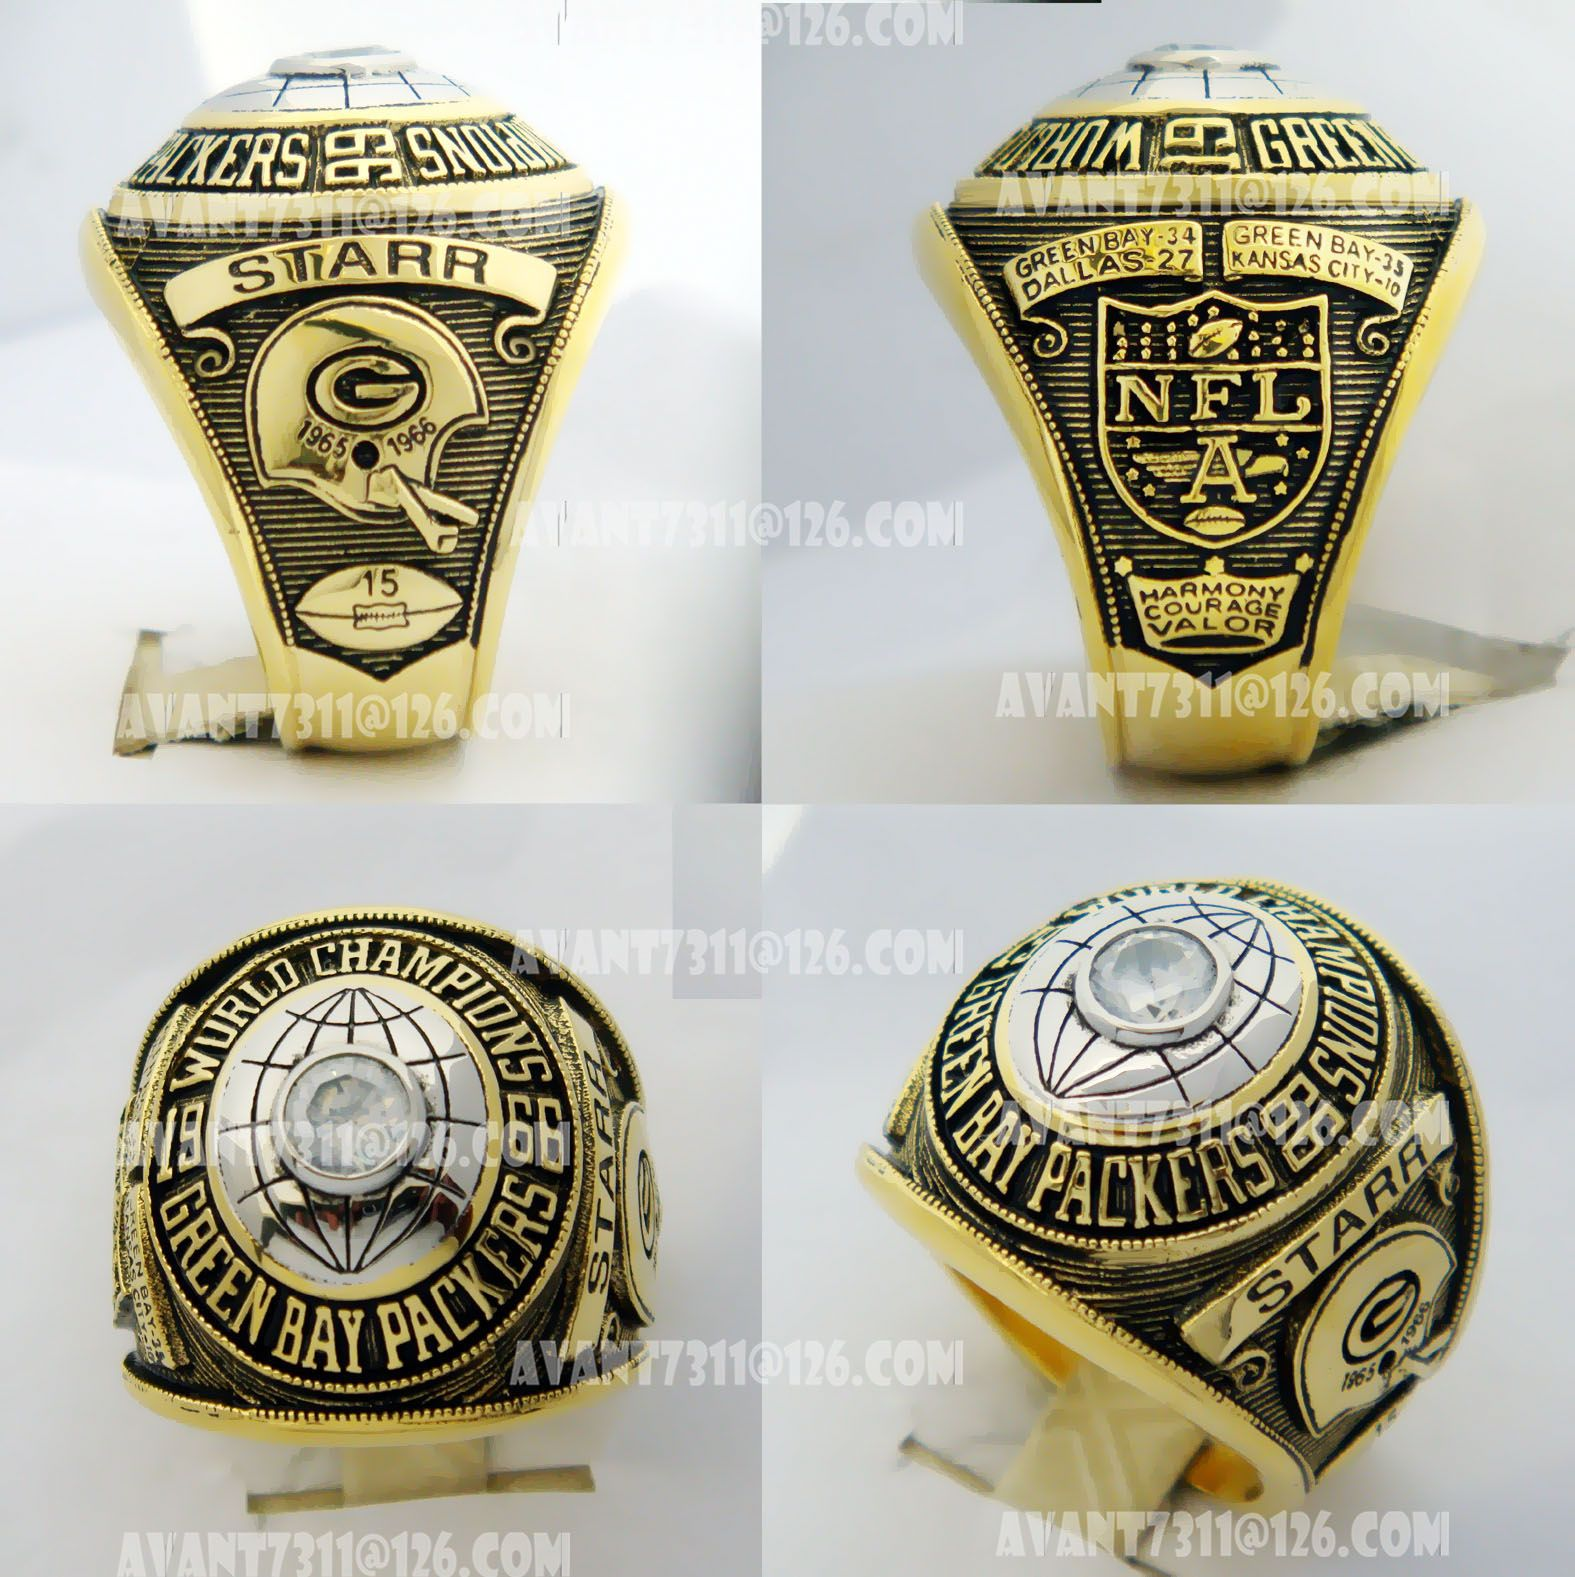 Byer 1966 Green Bay Packers World Championship Ring Super Bowl Rings Packers Super Bowl Championship Rings